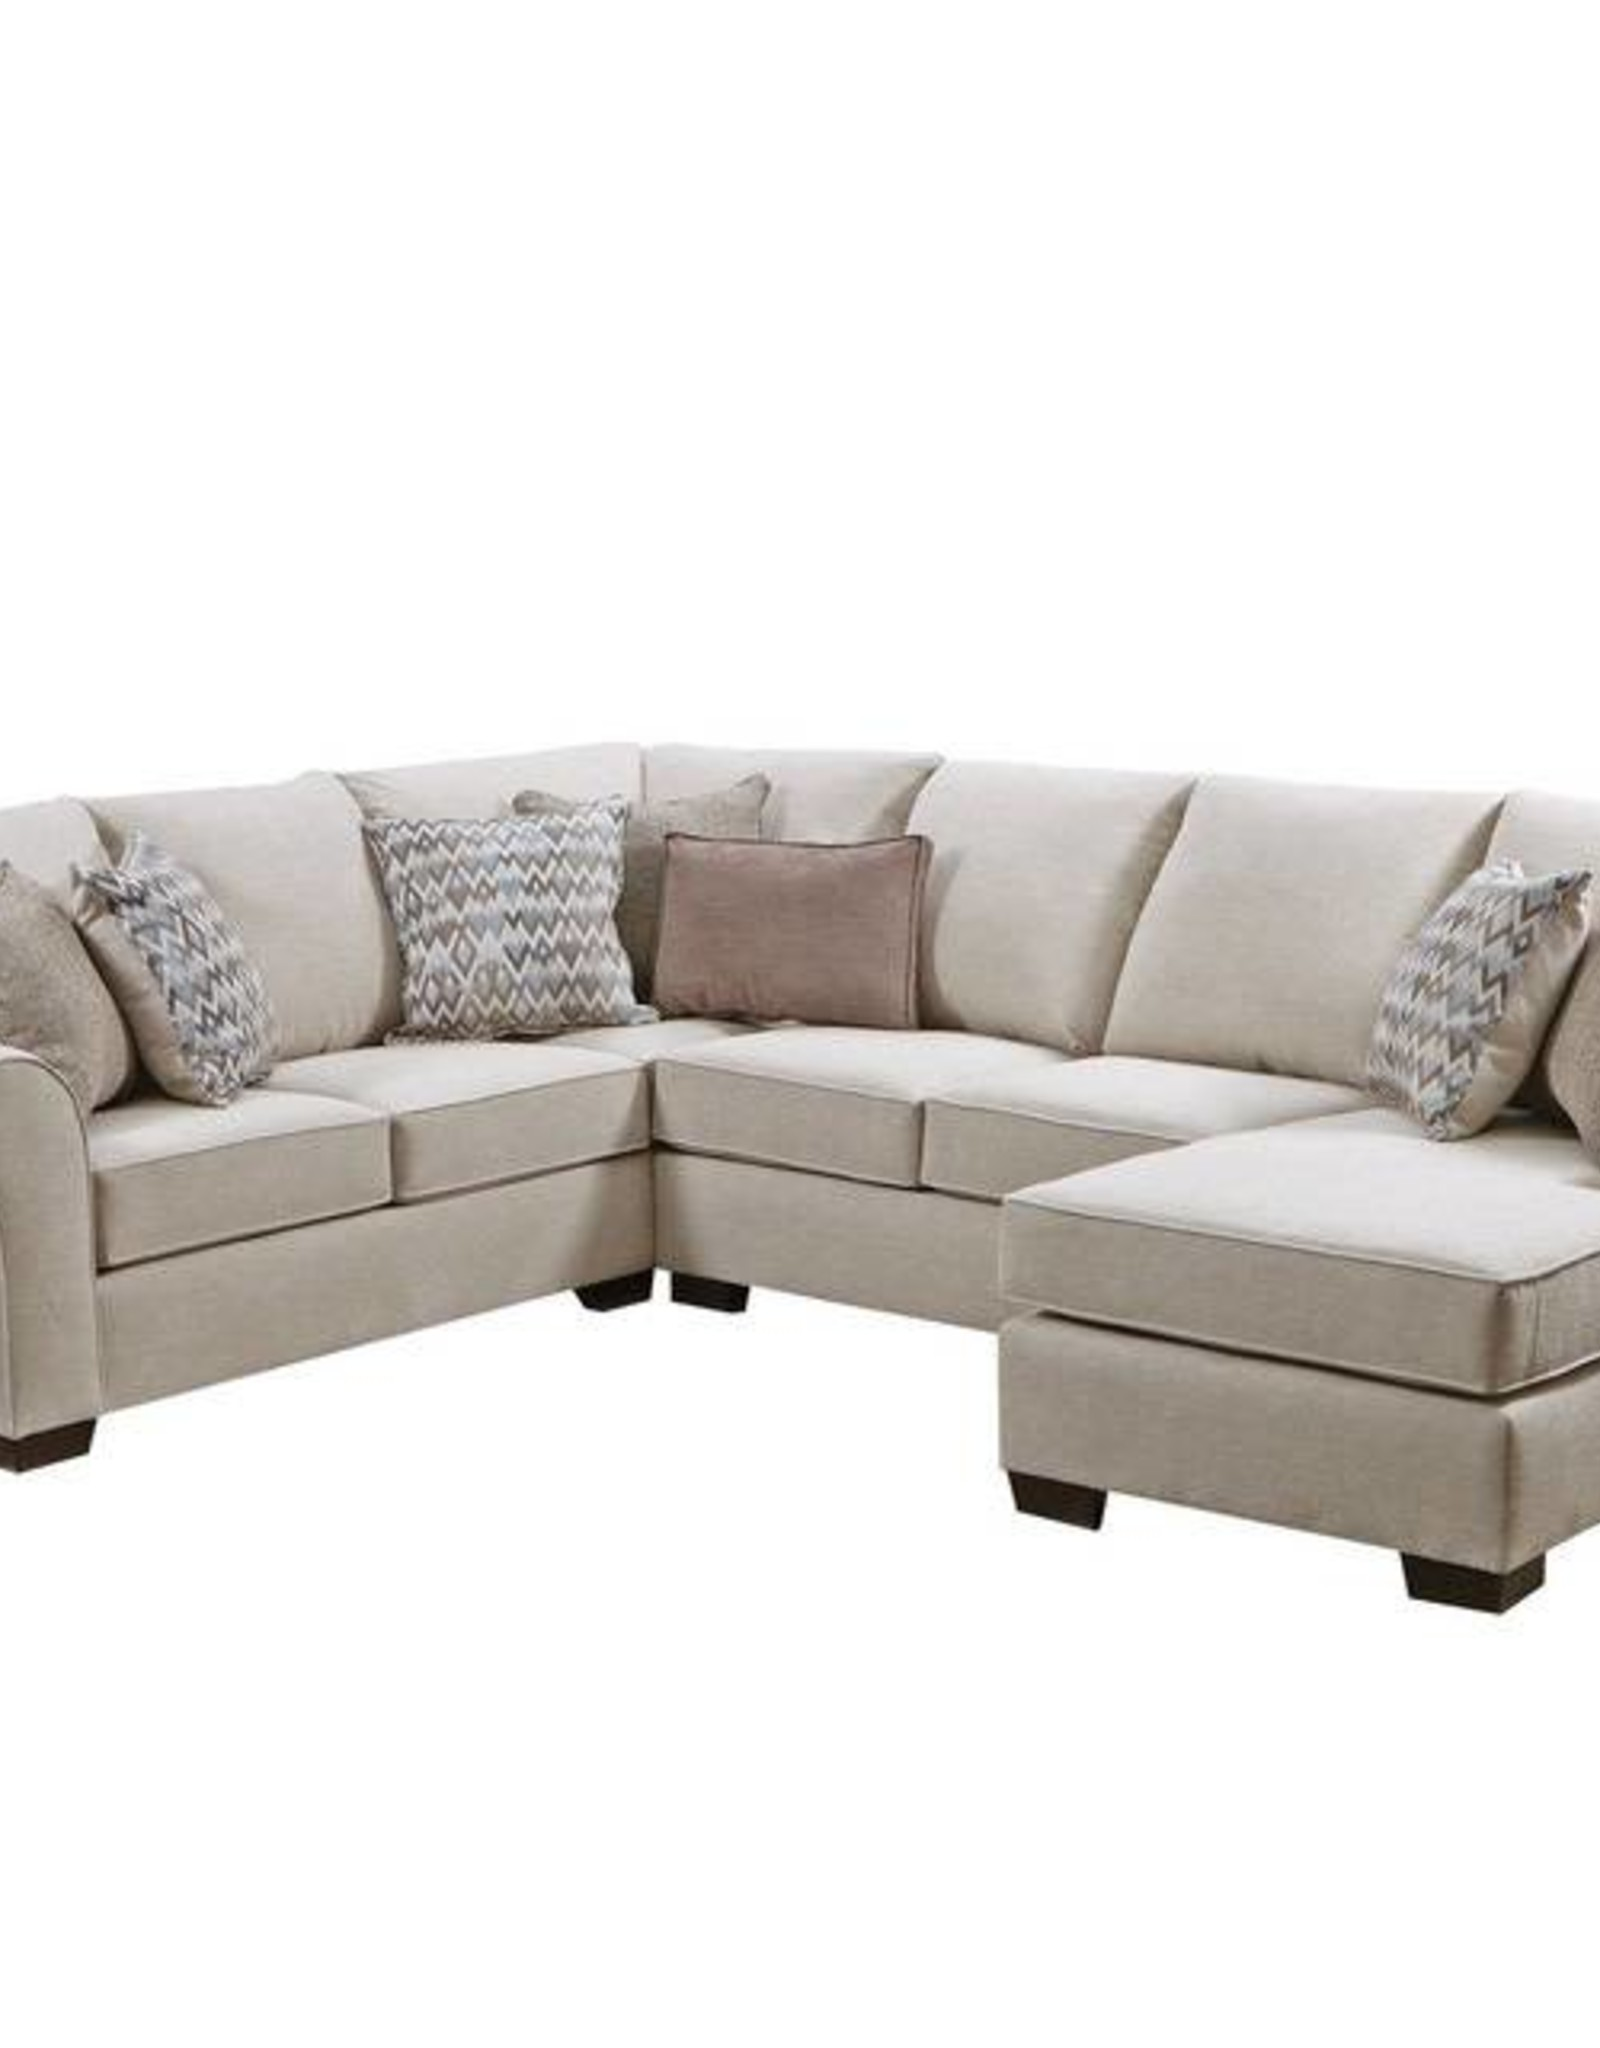 United Boston Linen Sectional w/ Chaise